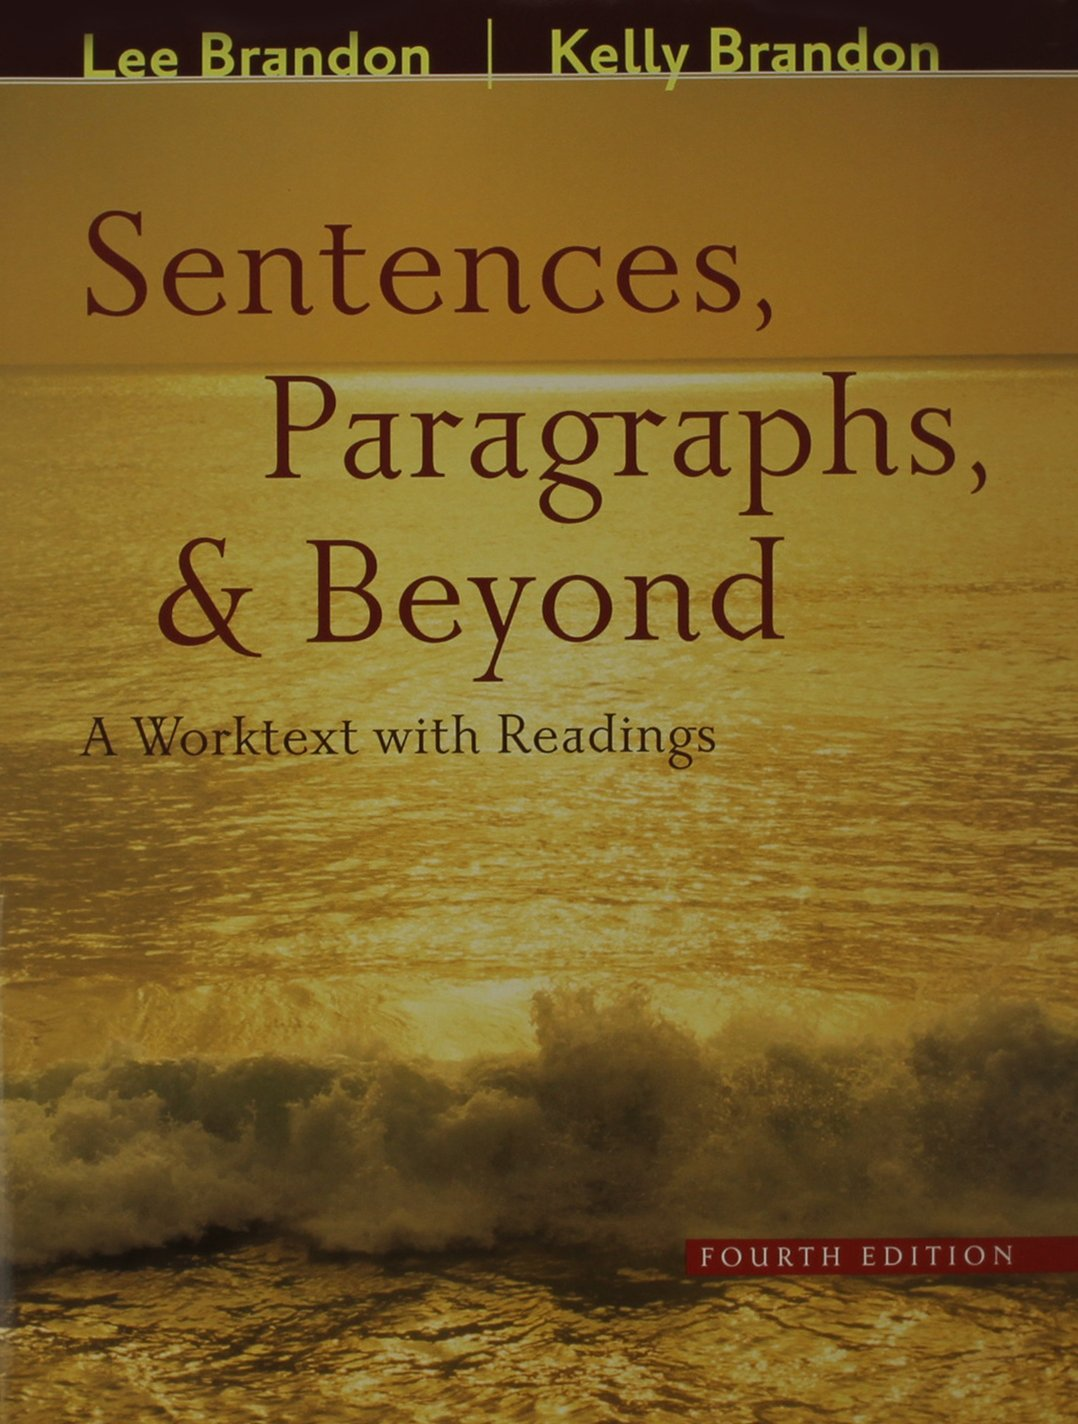 Download Sentences Paragraphs & Beyond, 4th Ed + New World Reader, 1st Ed ebook